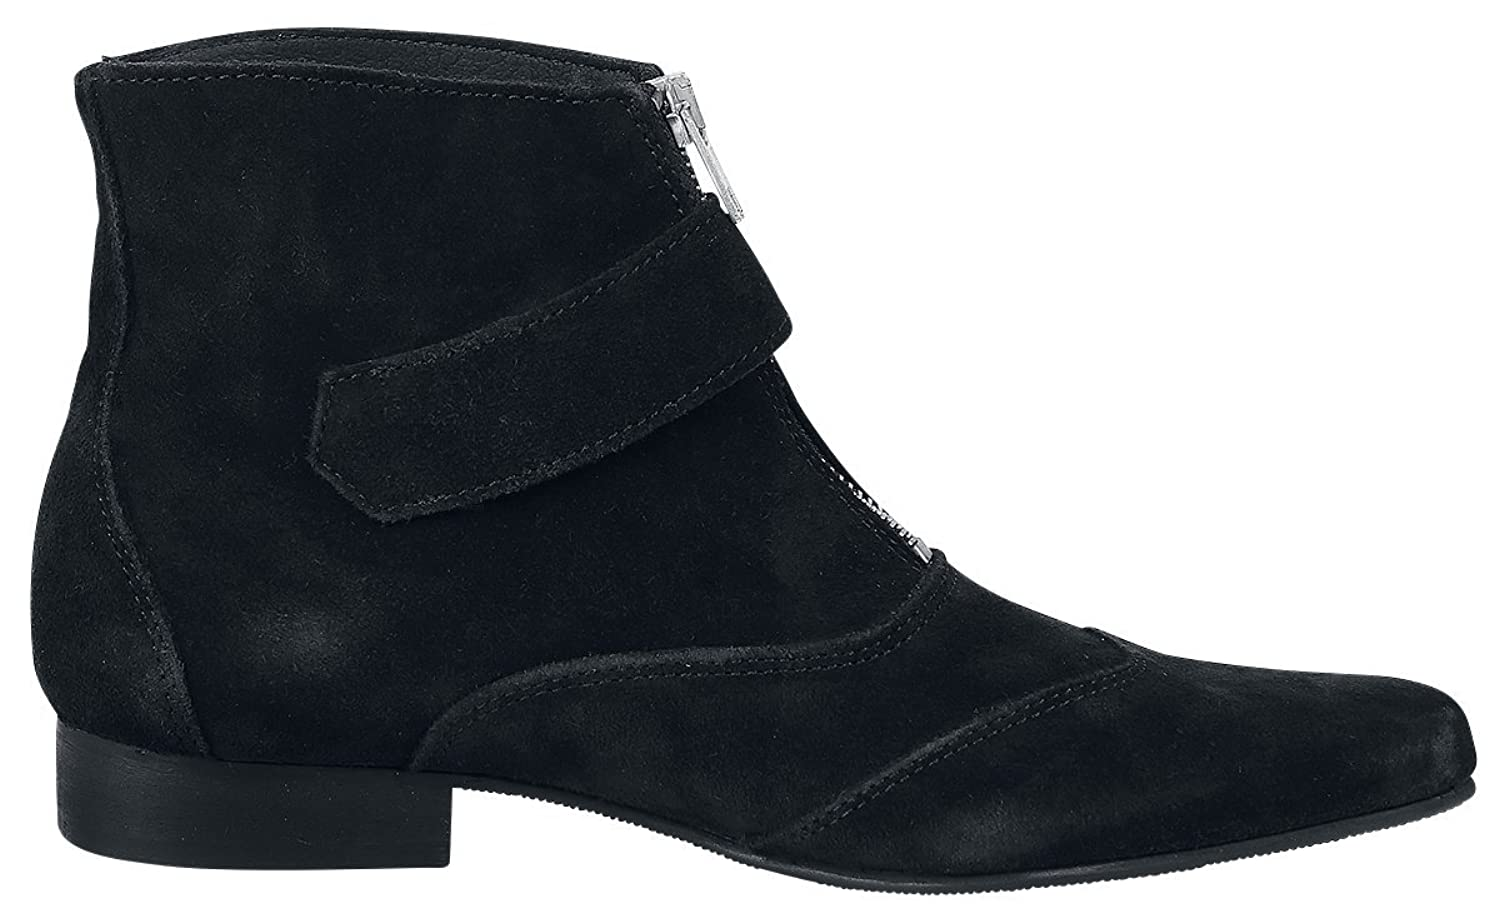 Steelground Shoes - Dragon Boot - Boots - schwarz ZRyxePyUjR